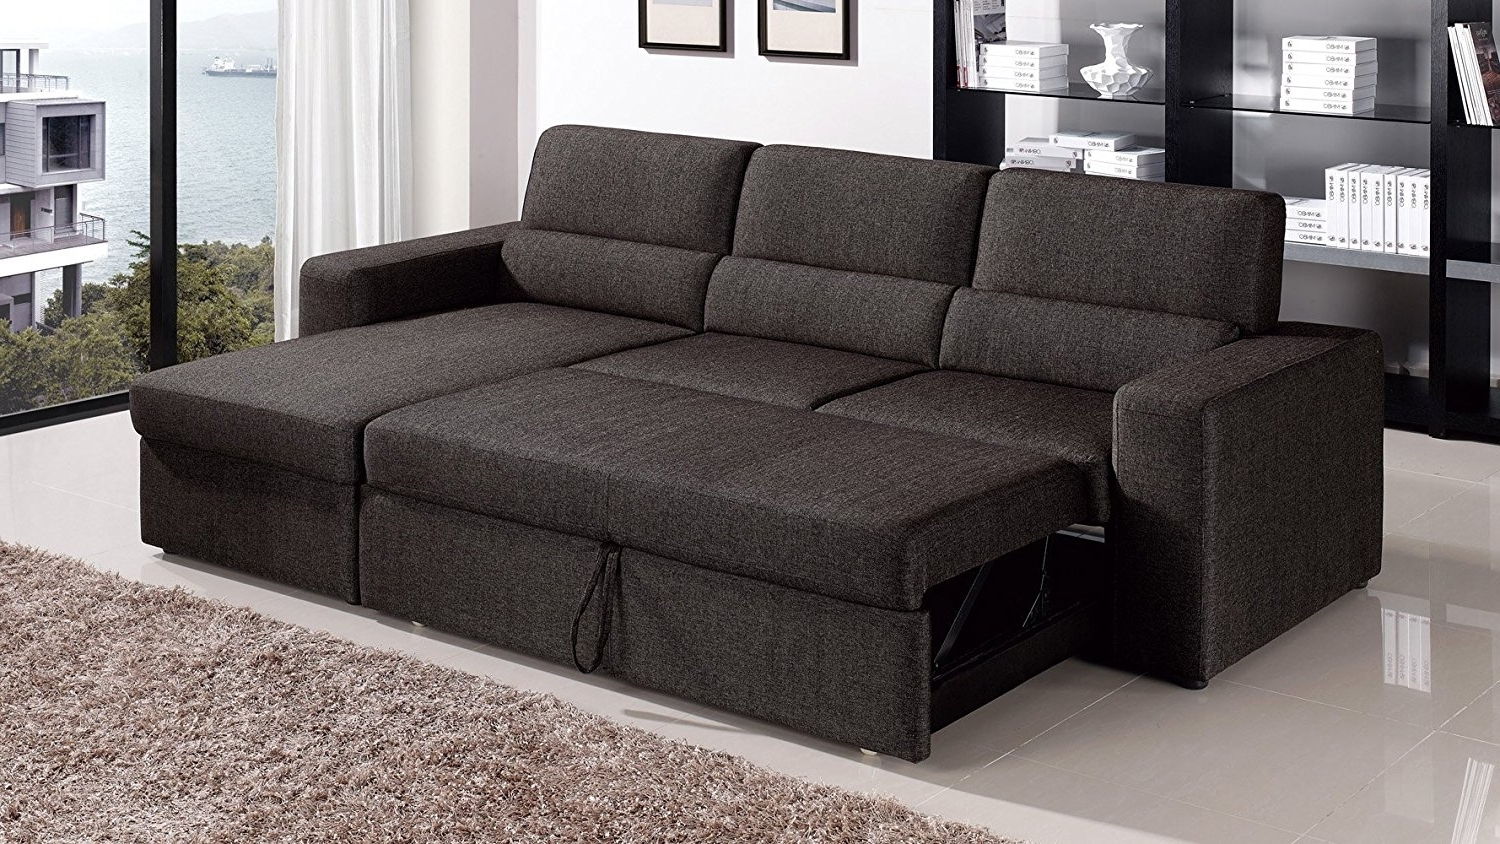 Fashionable Sleeper Chaise Sofas For Amazon: Black/brown Clubber Sleeper Sectional Sofa – Right (View 14 of 15)